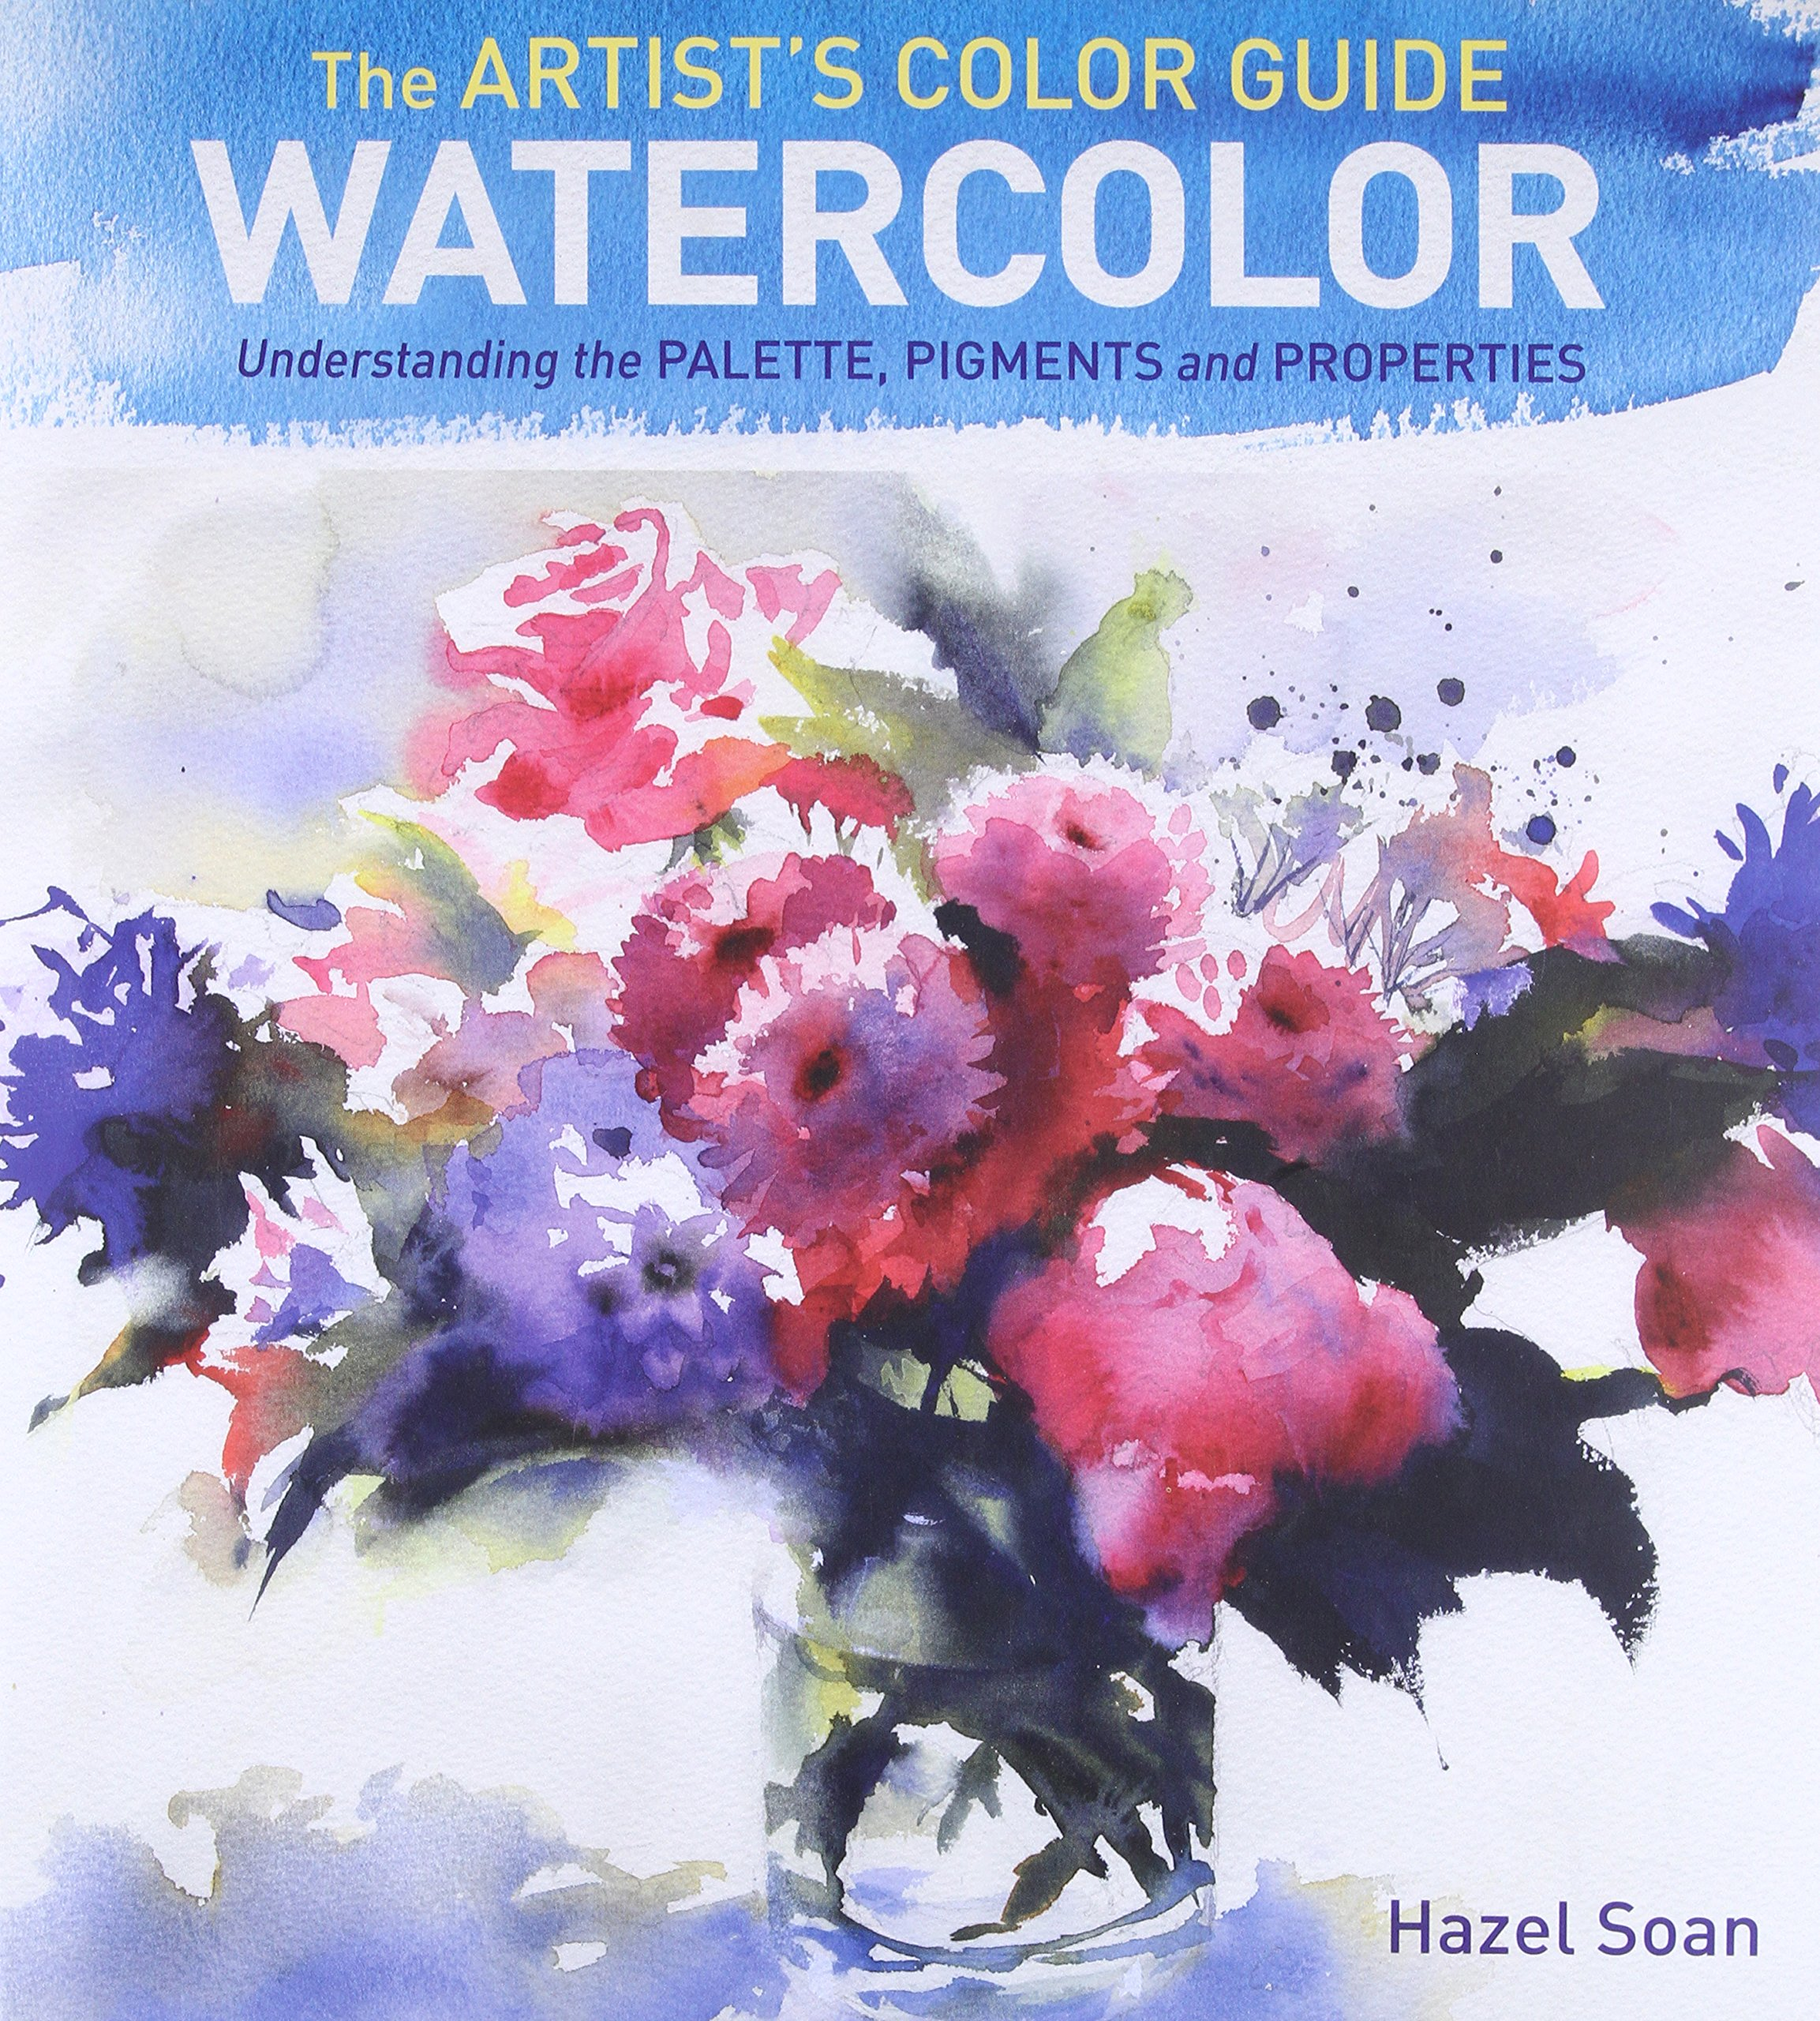 Watercolor artist magazine customer service - The Artist S Color Guide Watercolor Understanding Palette Pigments And Properties Hazel Soan 0035313660405 Amazon Com Books